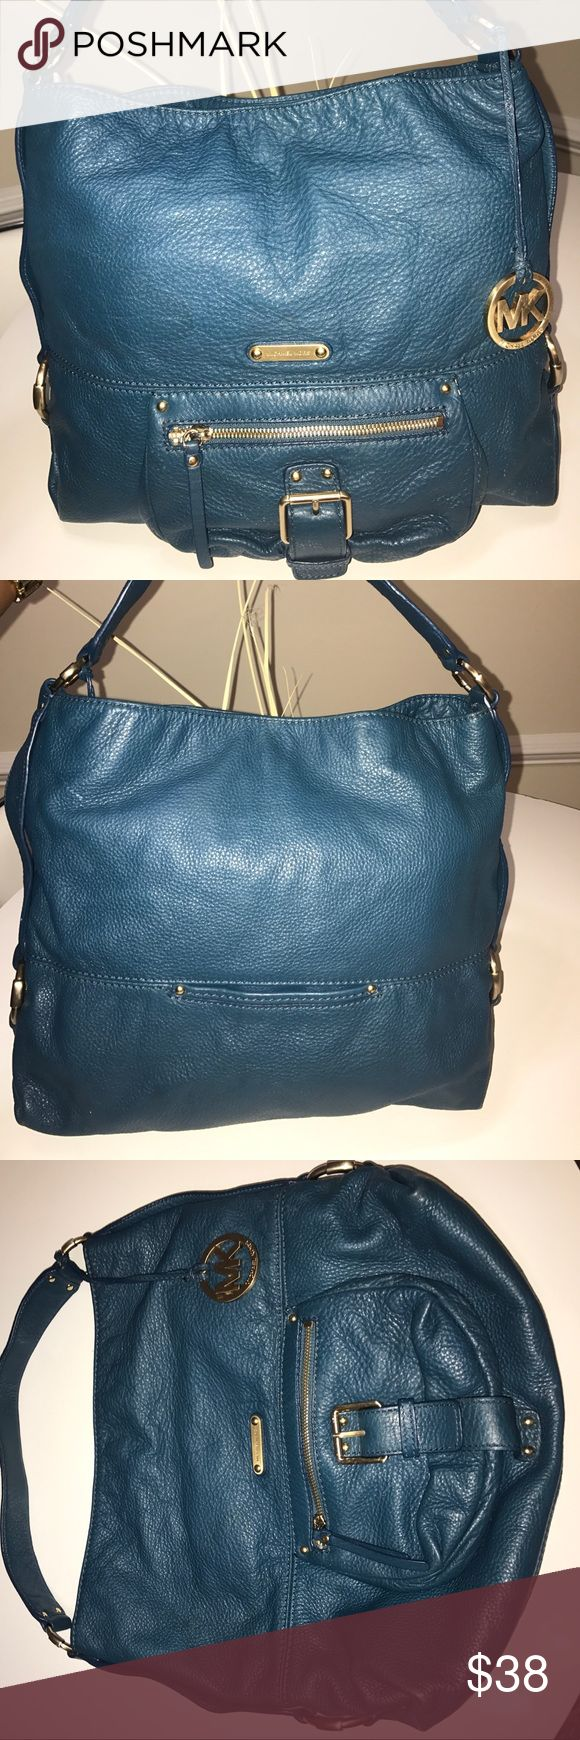 Authentic Michael Kors Pebbled Leather Tote Bag Excellent Used Condition! Teal and gold hardware. Michael Kors Bags Totes